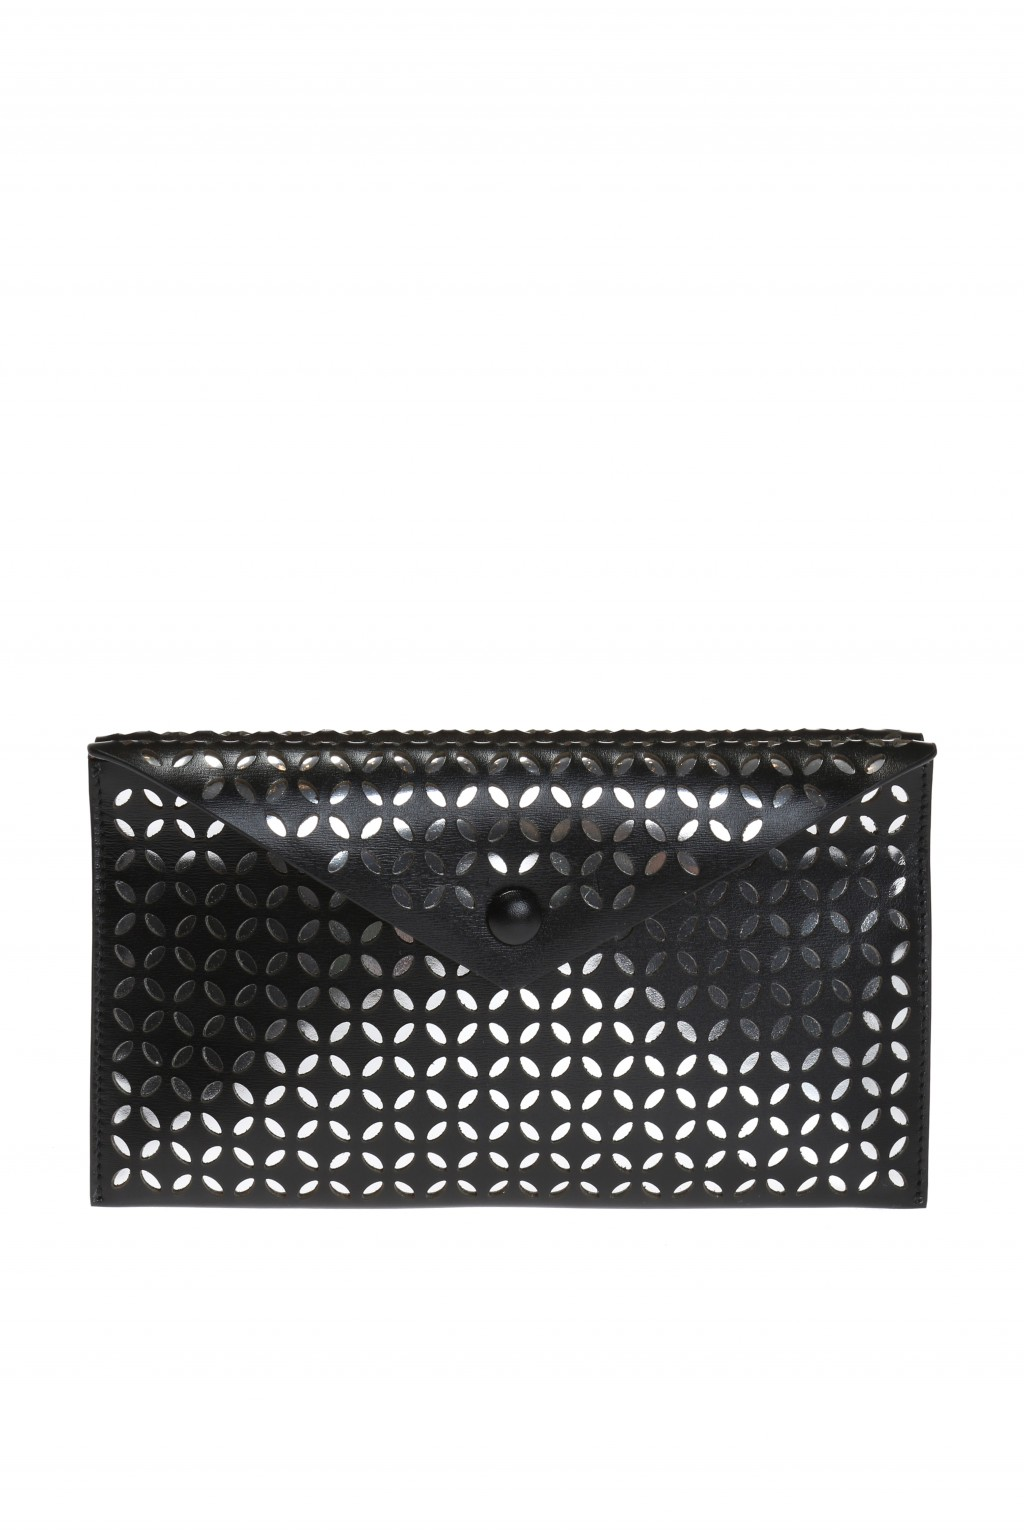 Alaia Openwork pattern shoulder bag